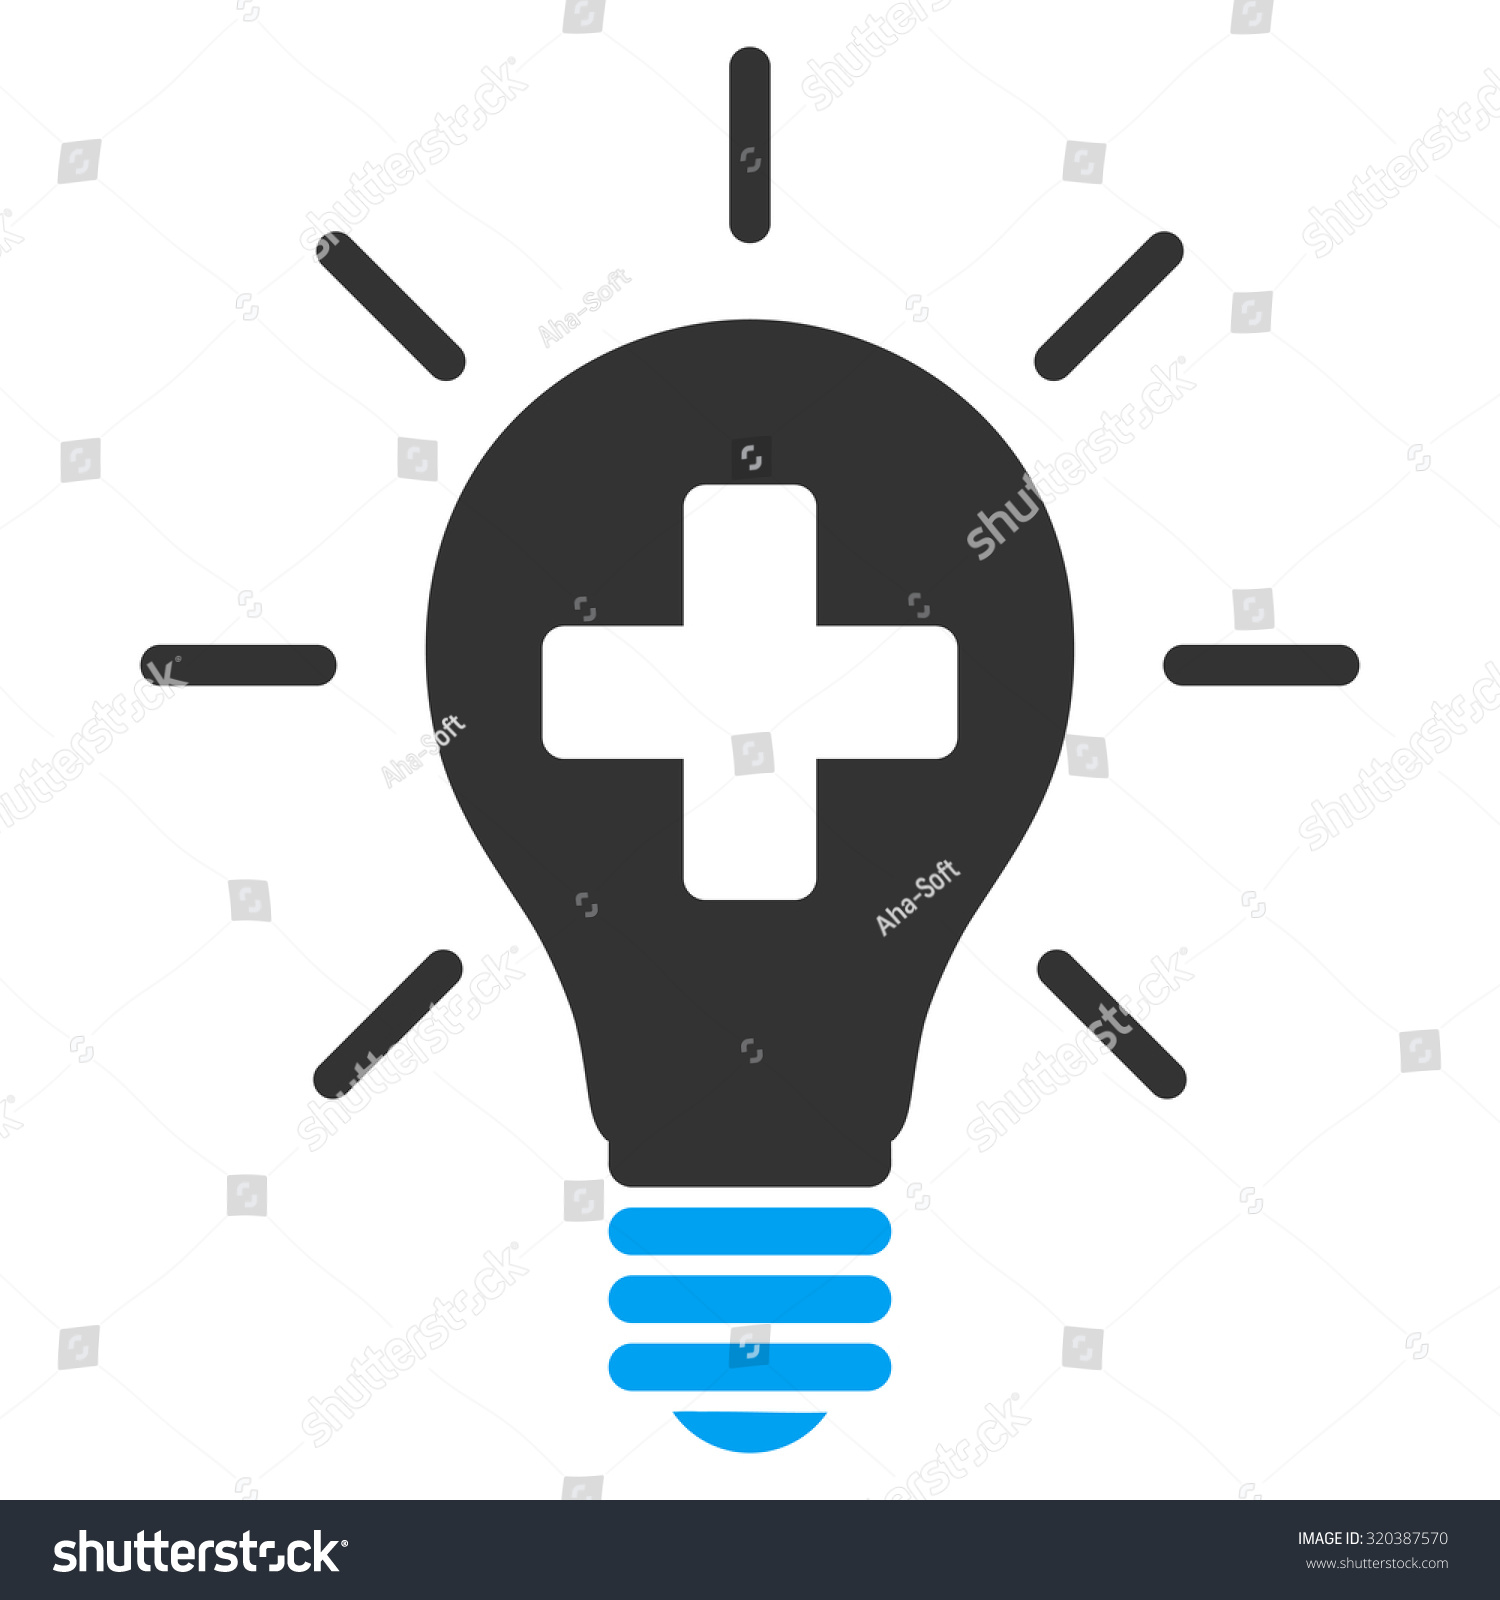 Medical Electric Lamp Vector Icon Style Is Bicolor Flat Symbol Blue And Gray Colors